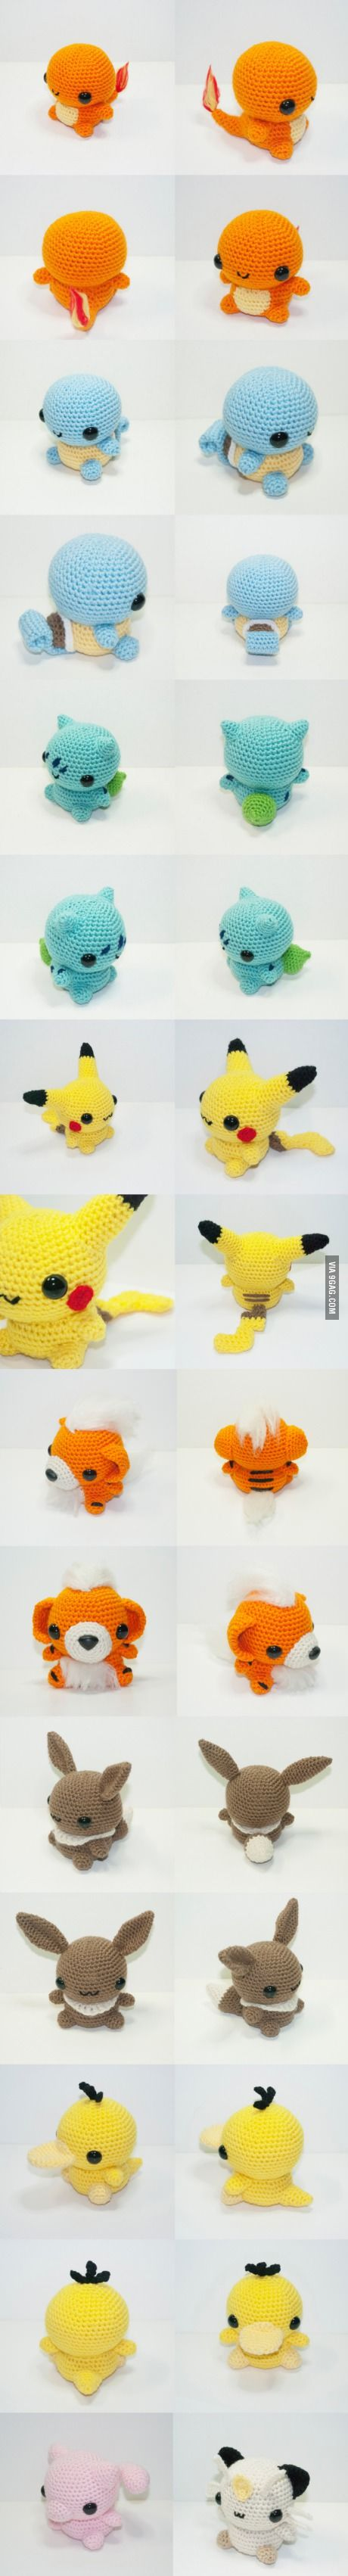 995 best Crochet and Knitted Plushies images on Pinterest ...